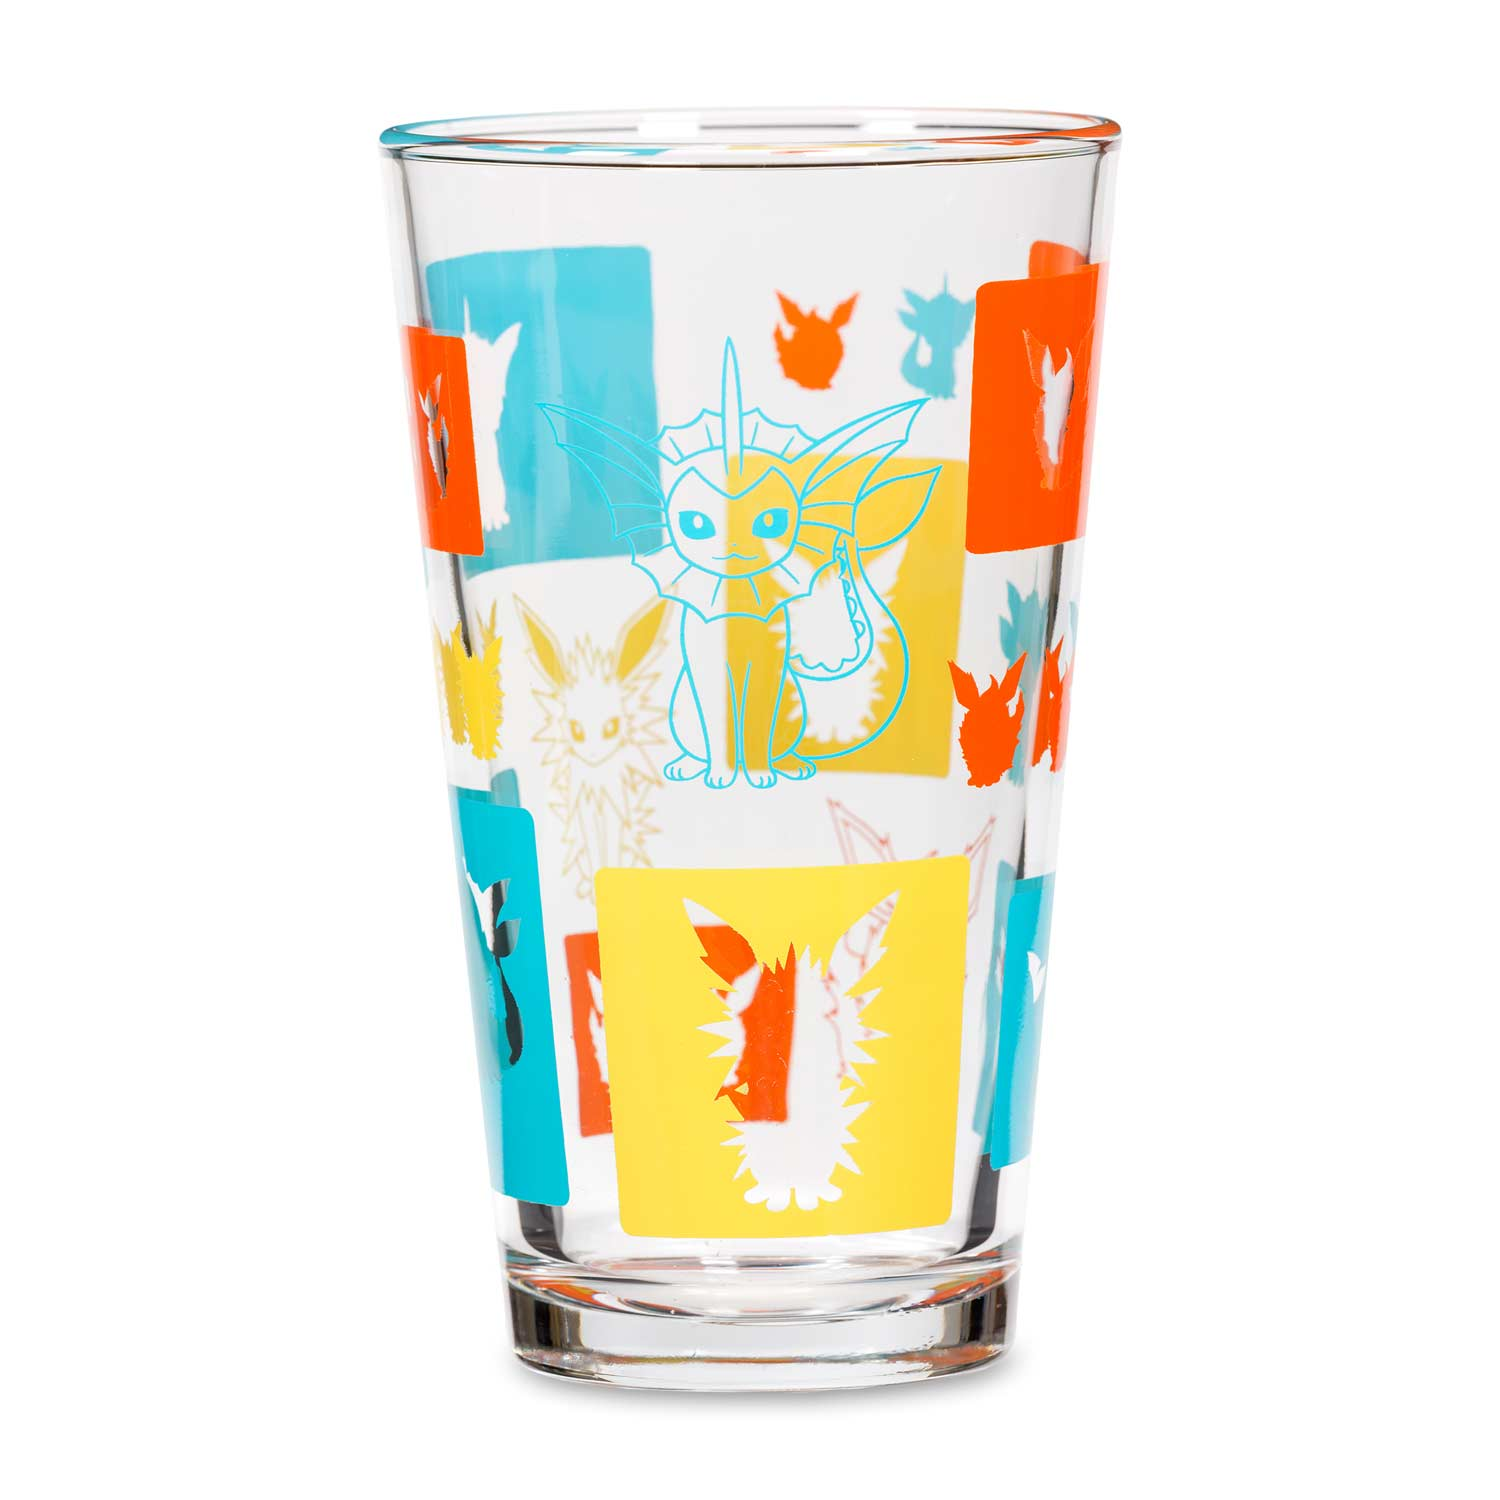 Flareon Jolteon Vaporeon Eevee Elements Glass Tumbler